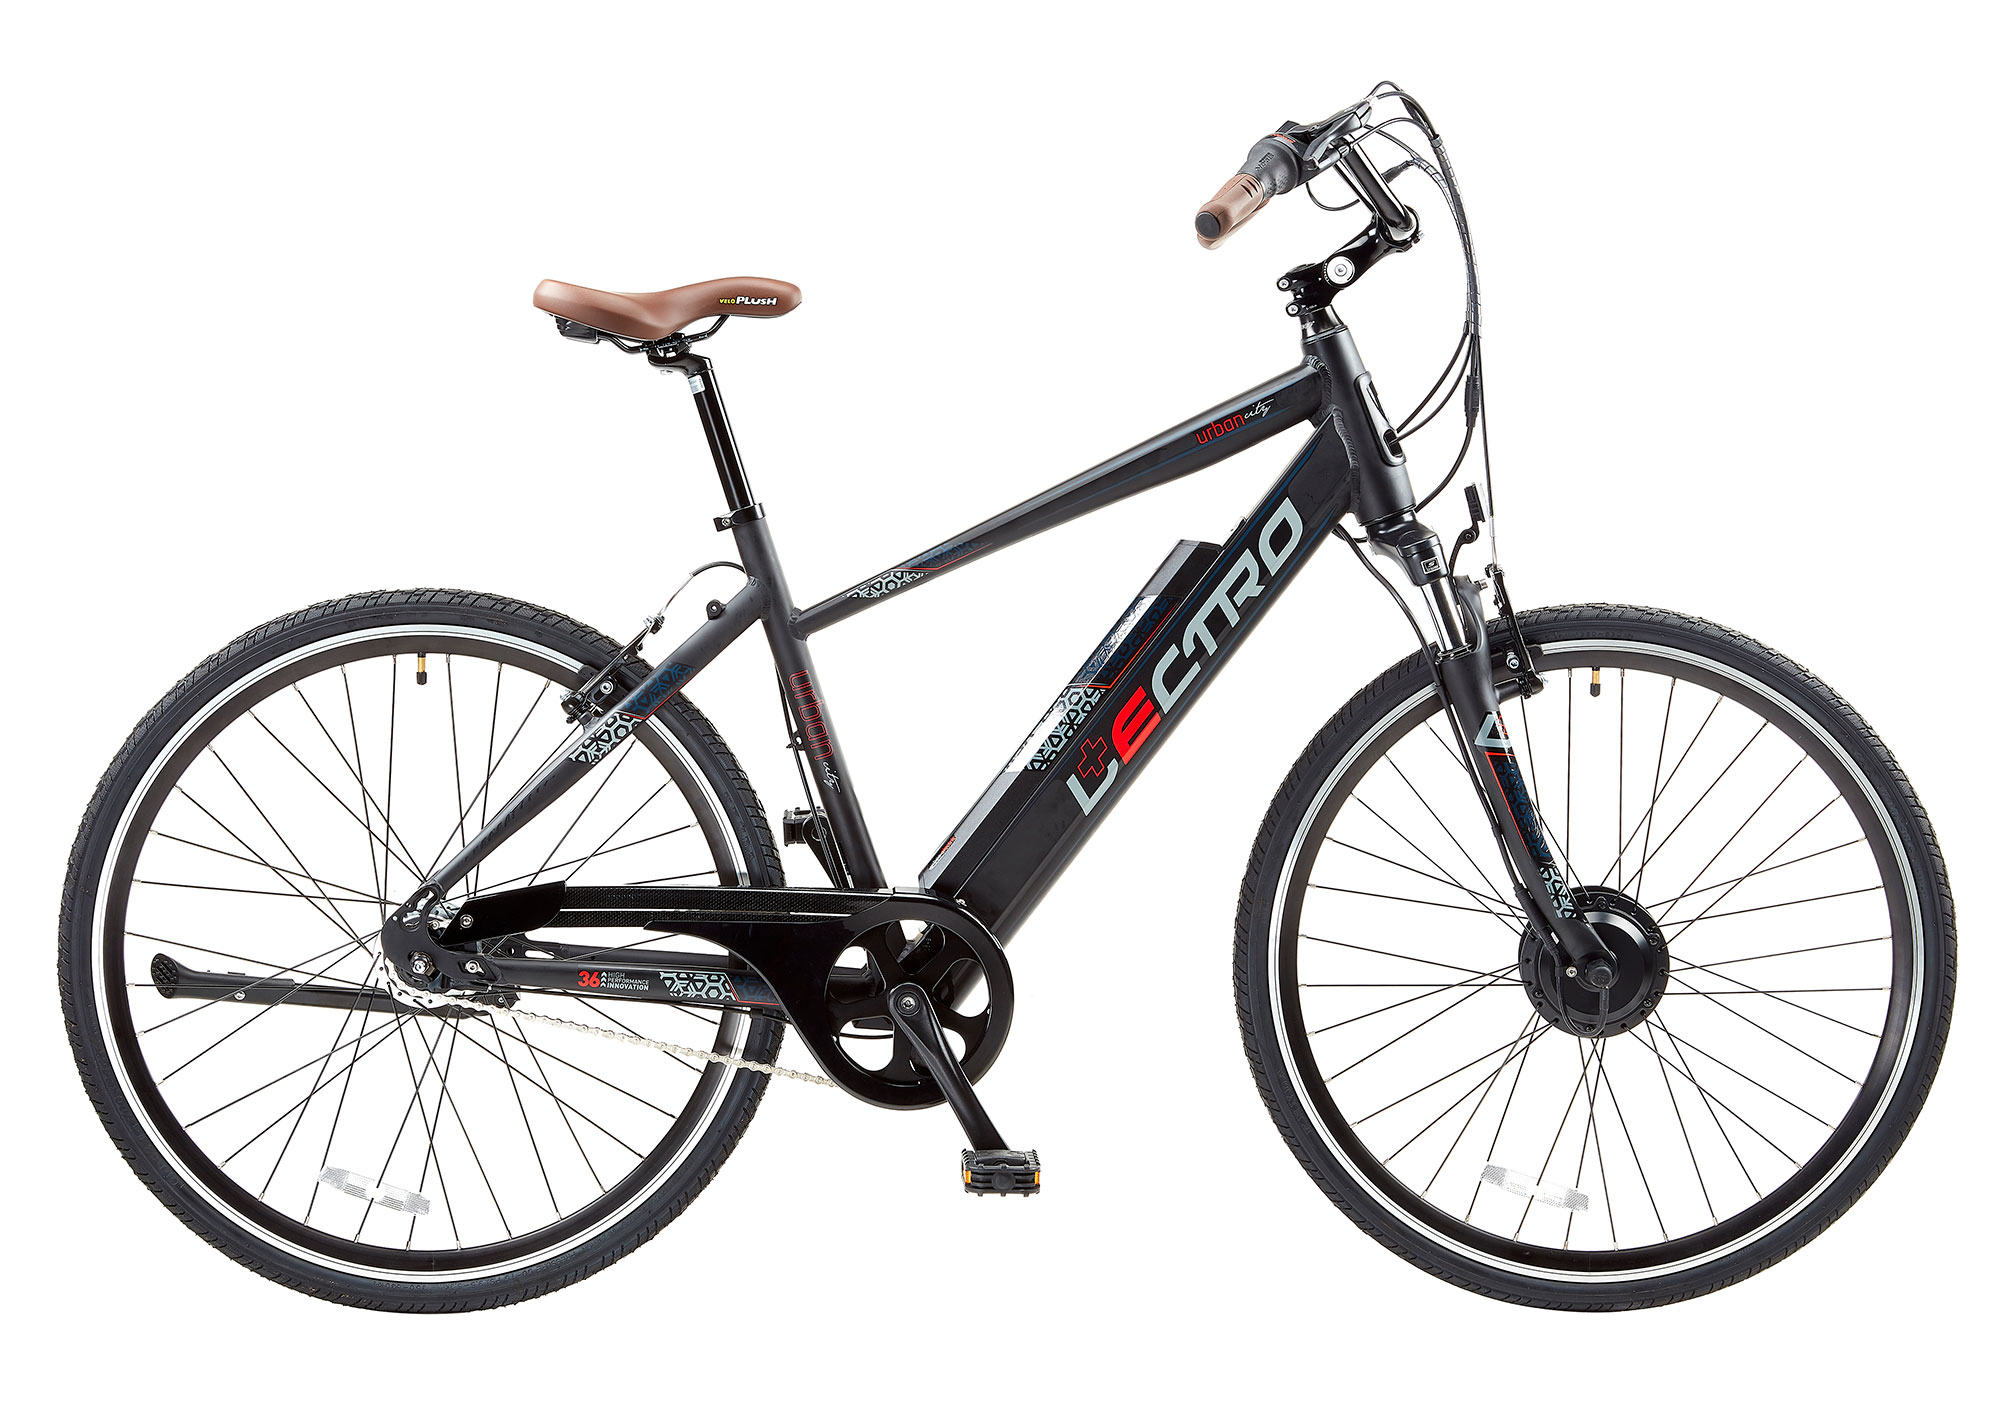 19 Urban City 7 Speed 36v E Bike 700c Wheel Gents